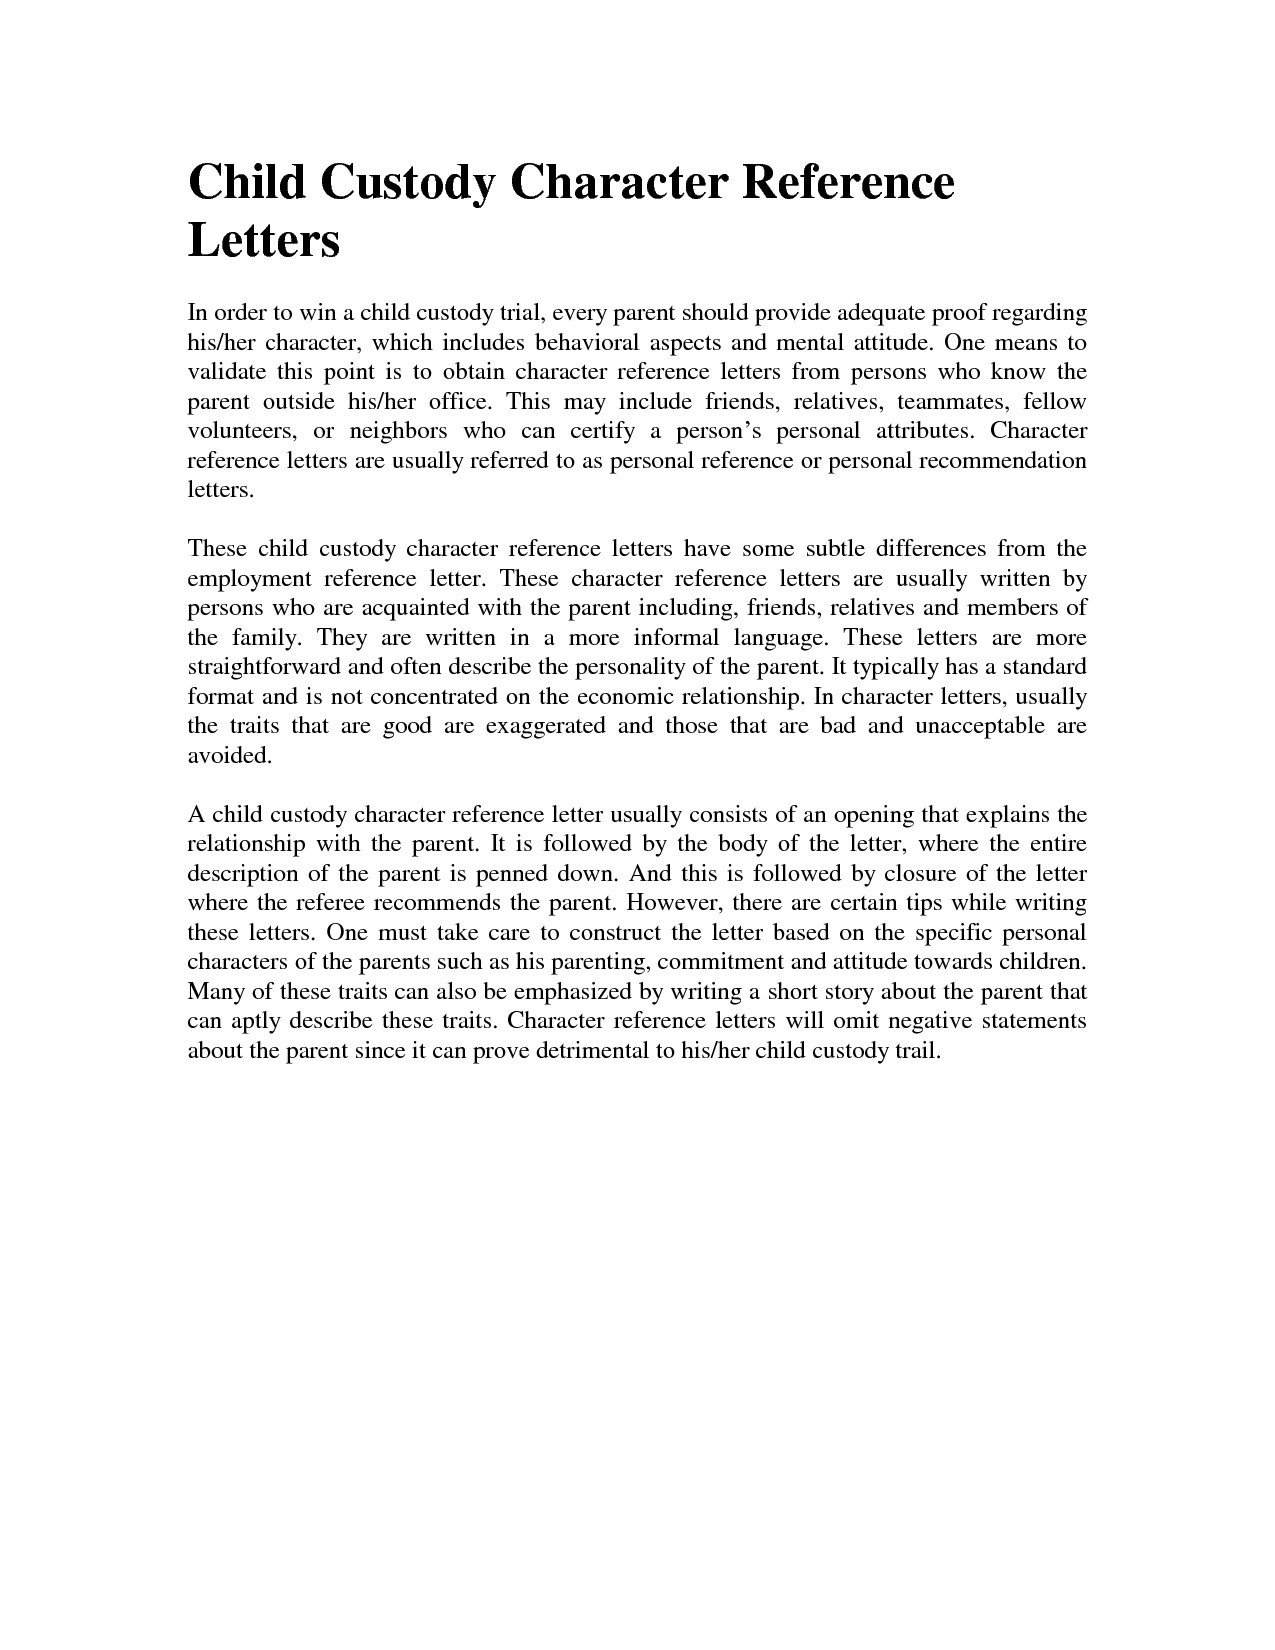 Child Custody Letter Template Character Reference Letter for Court Child Custody